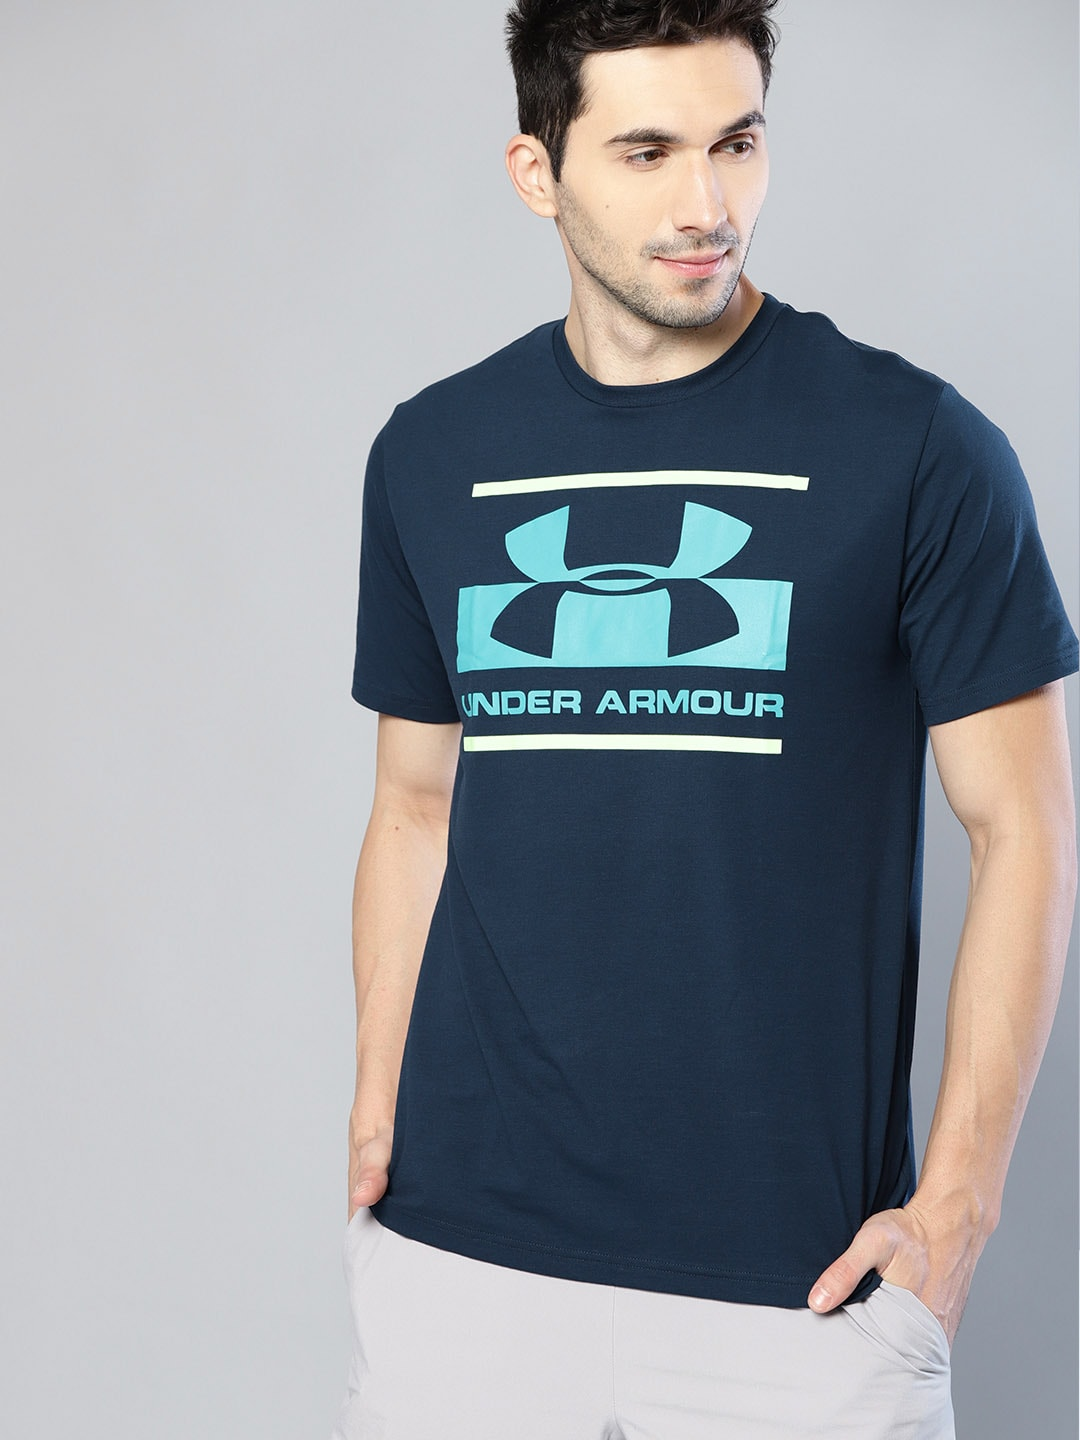 Under Armour - Buy Under Armour online in India 5b1755eb15efa